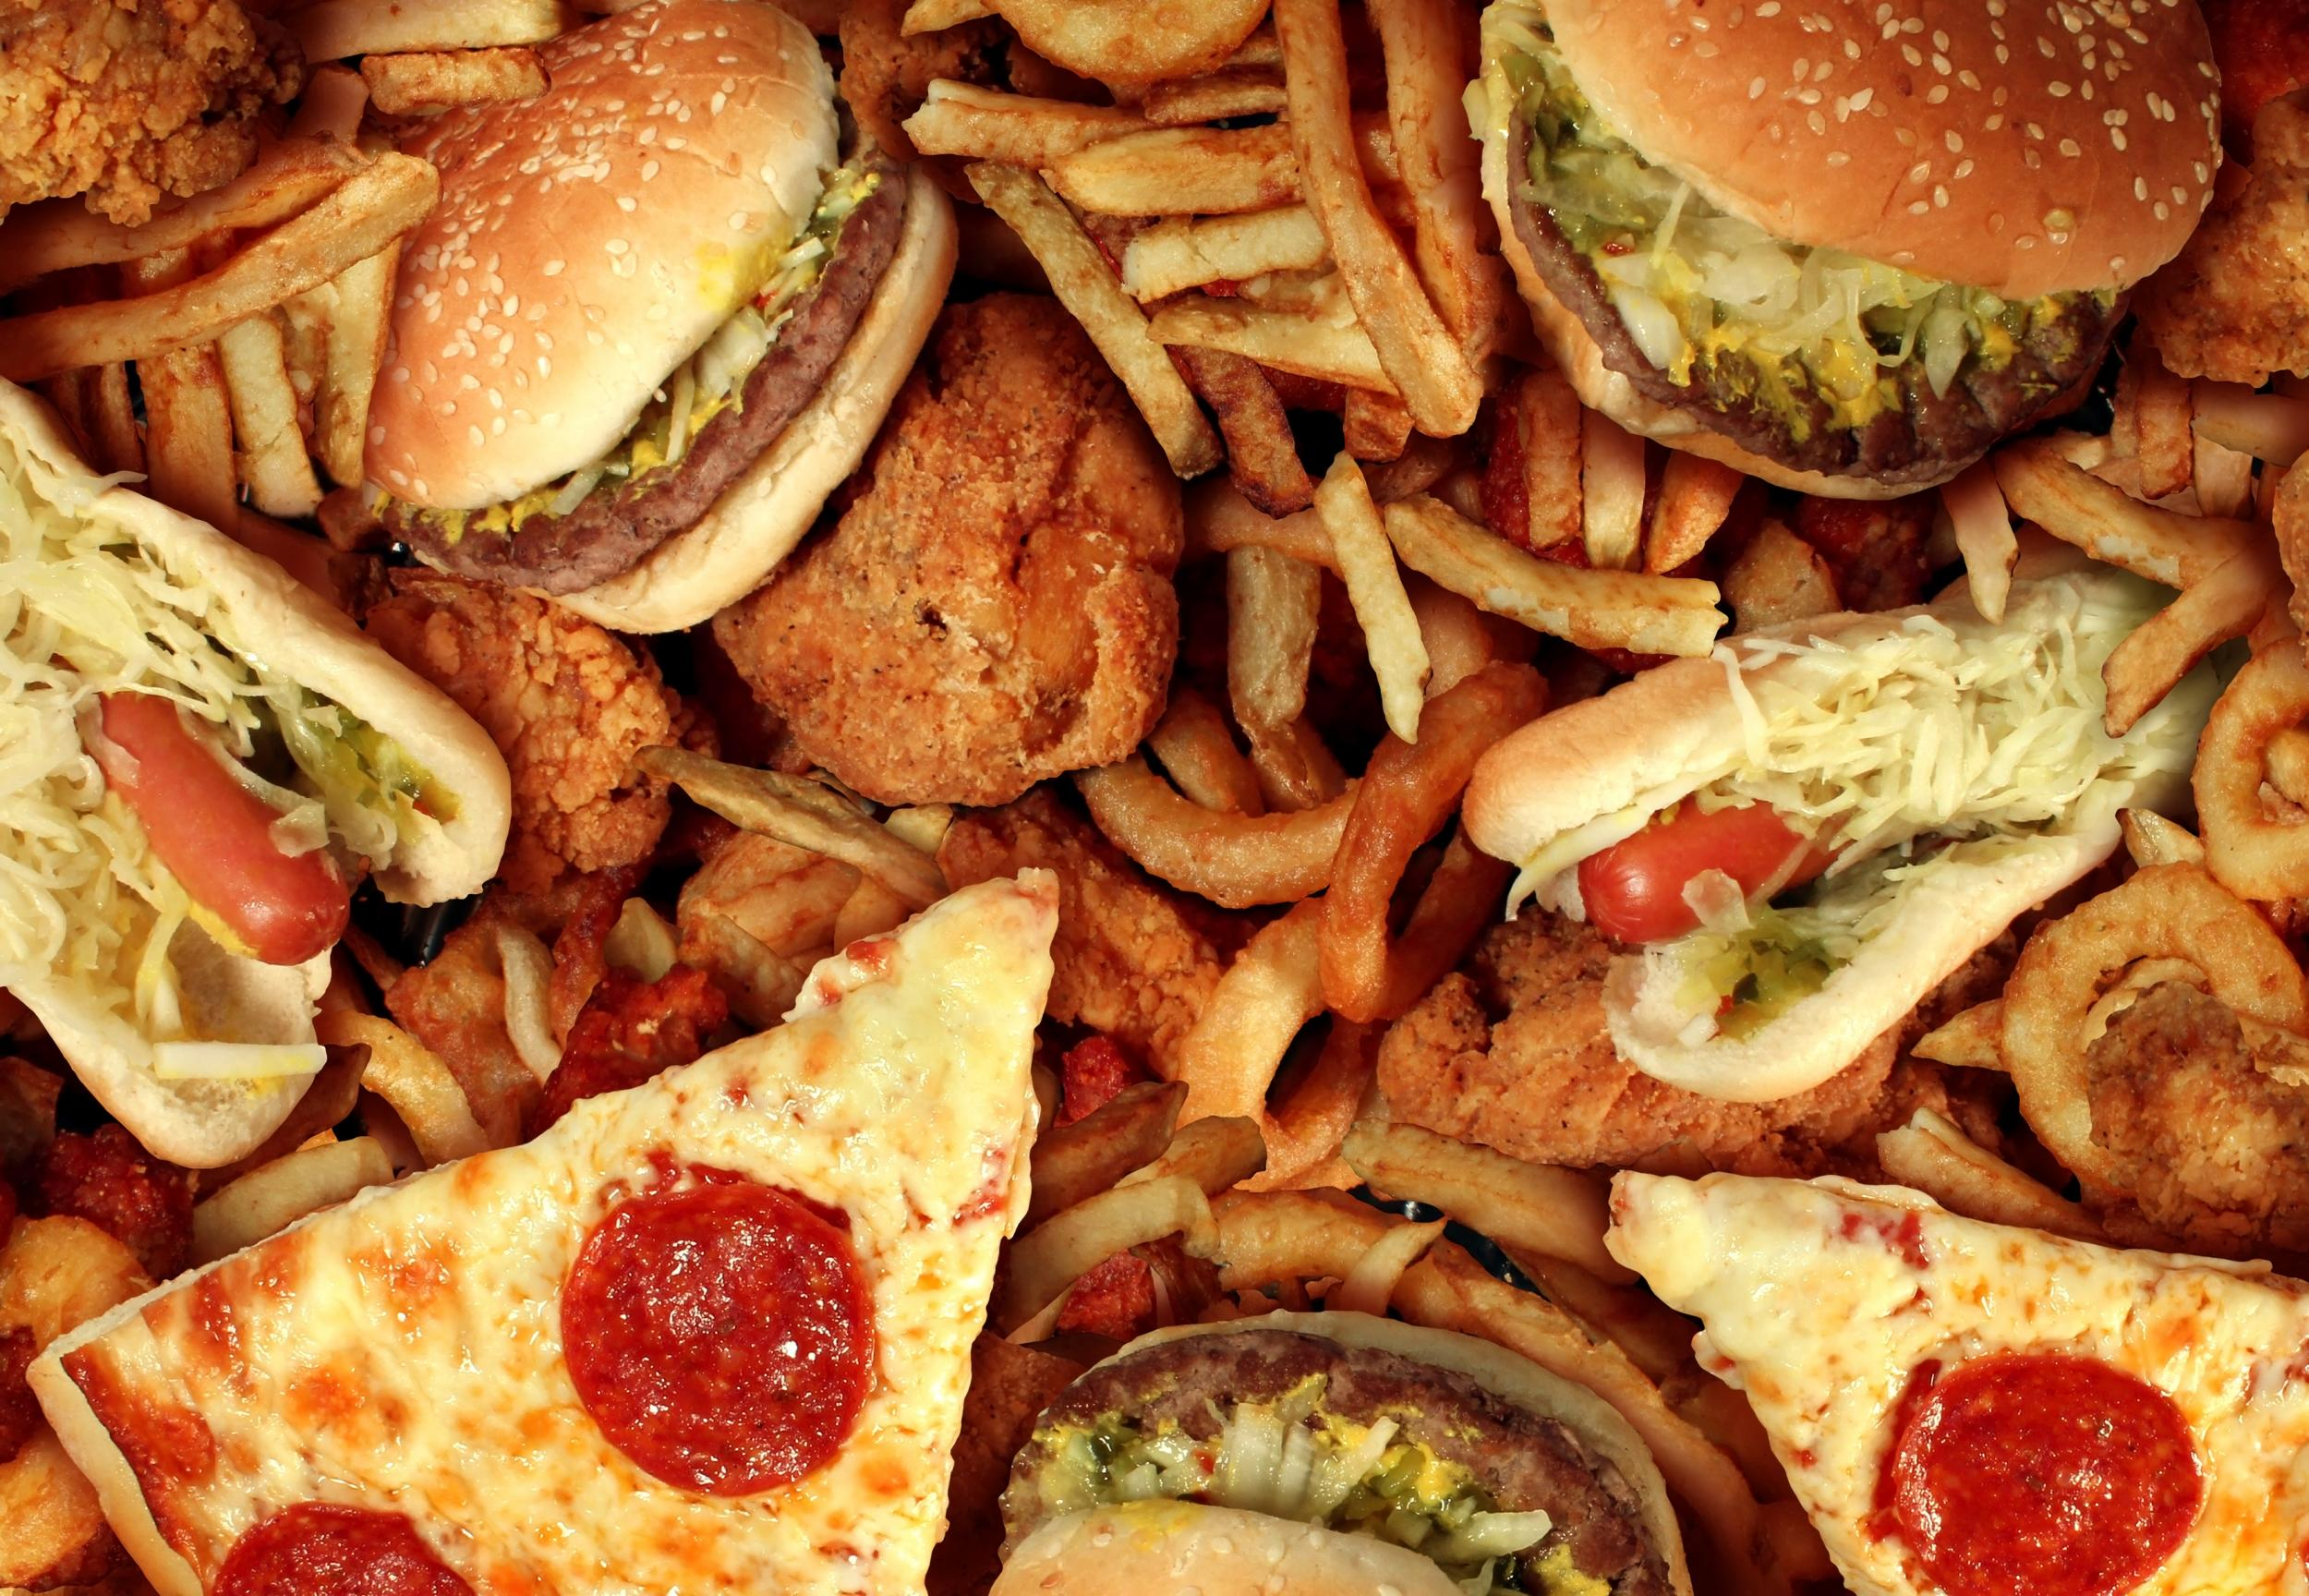 Government 'to announce ban on junk food advertising before 9pm' as part of obesity crackdown thumbnail